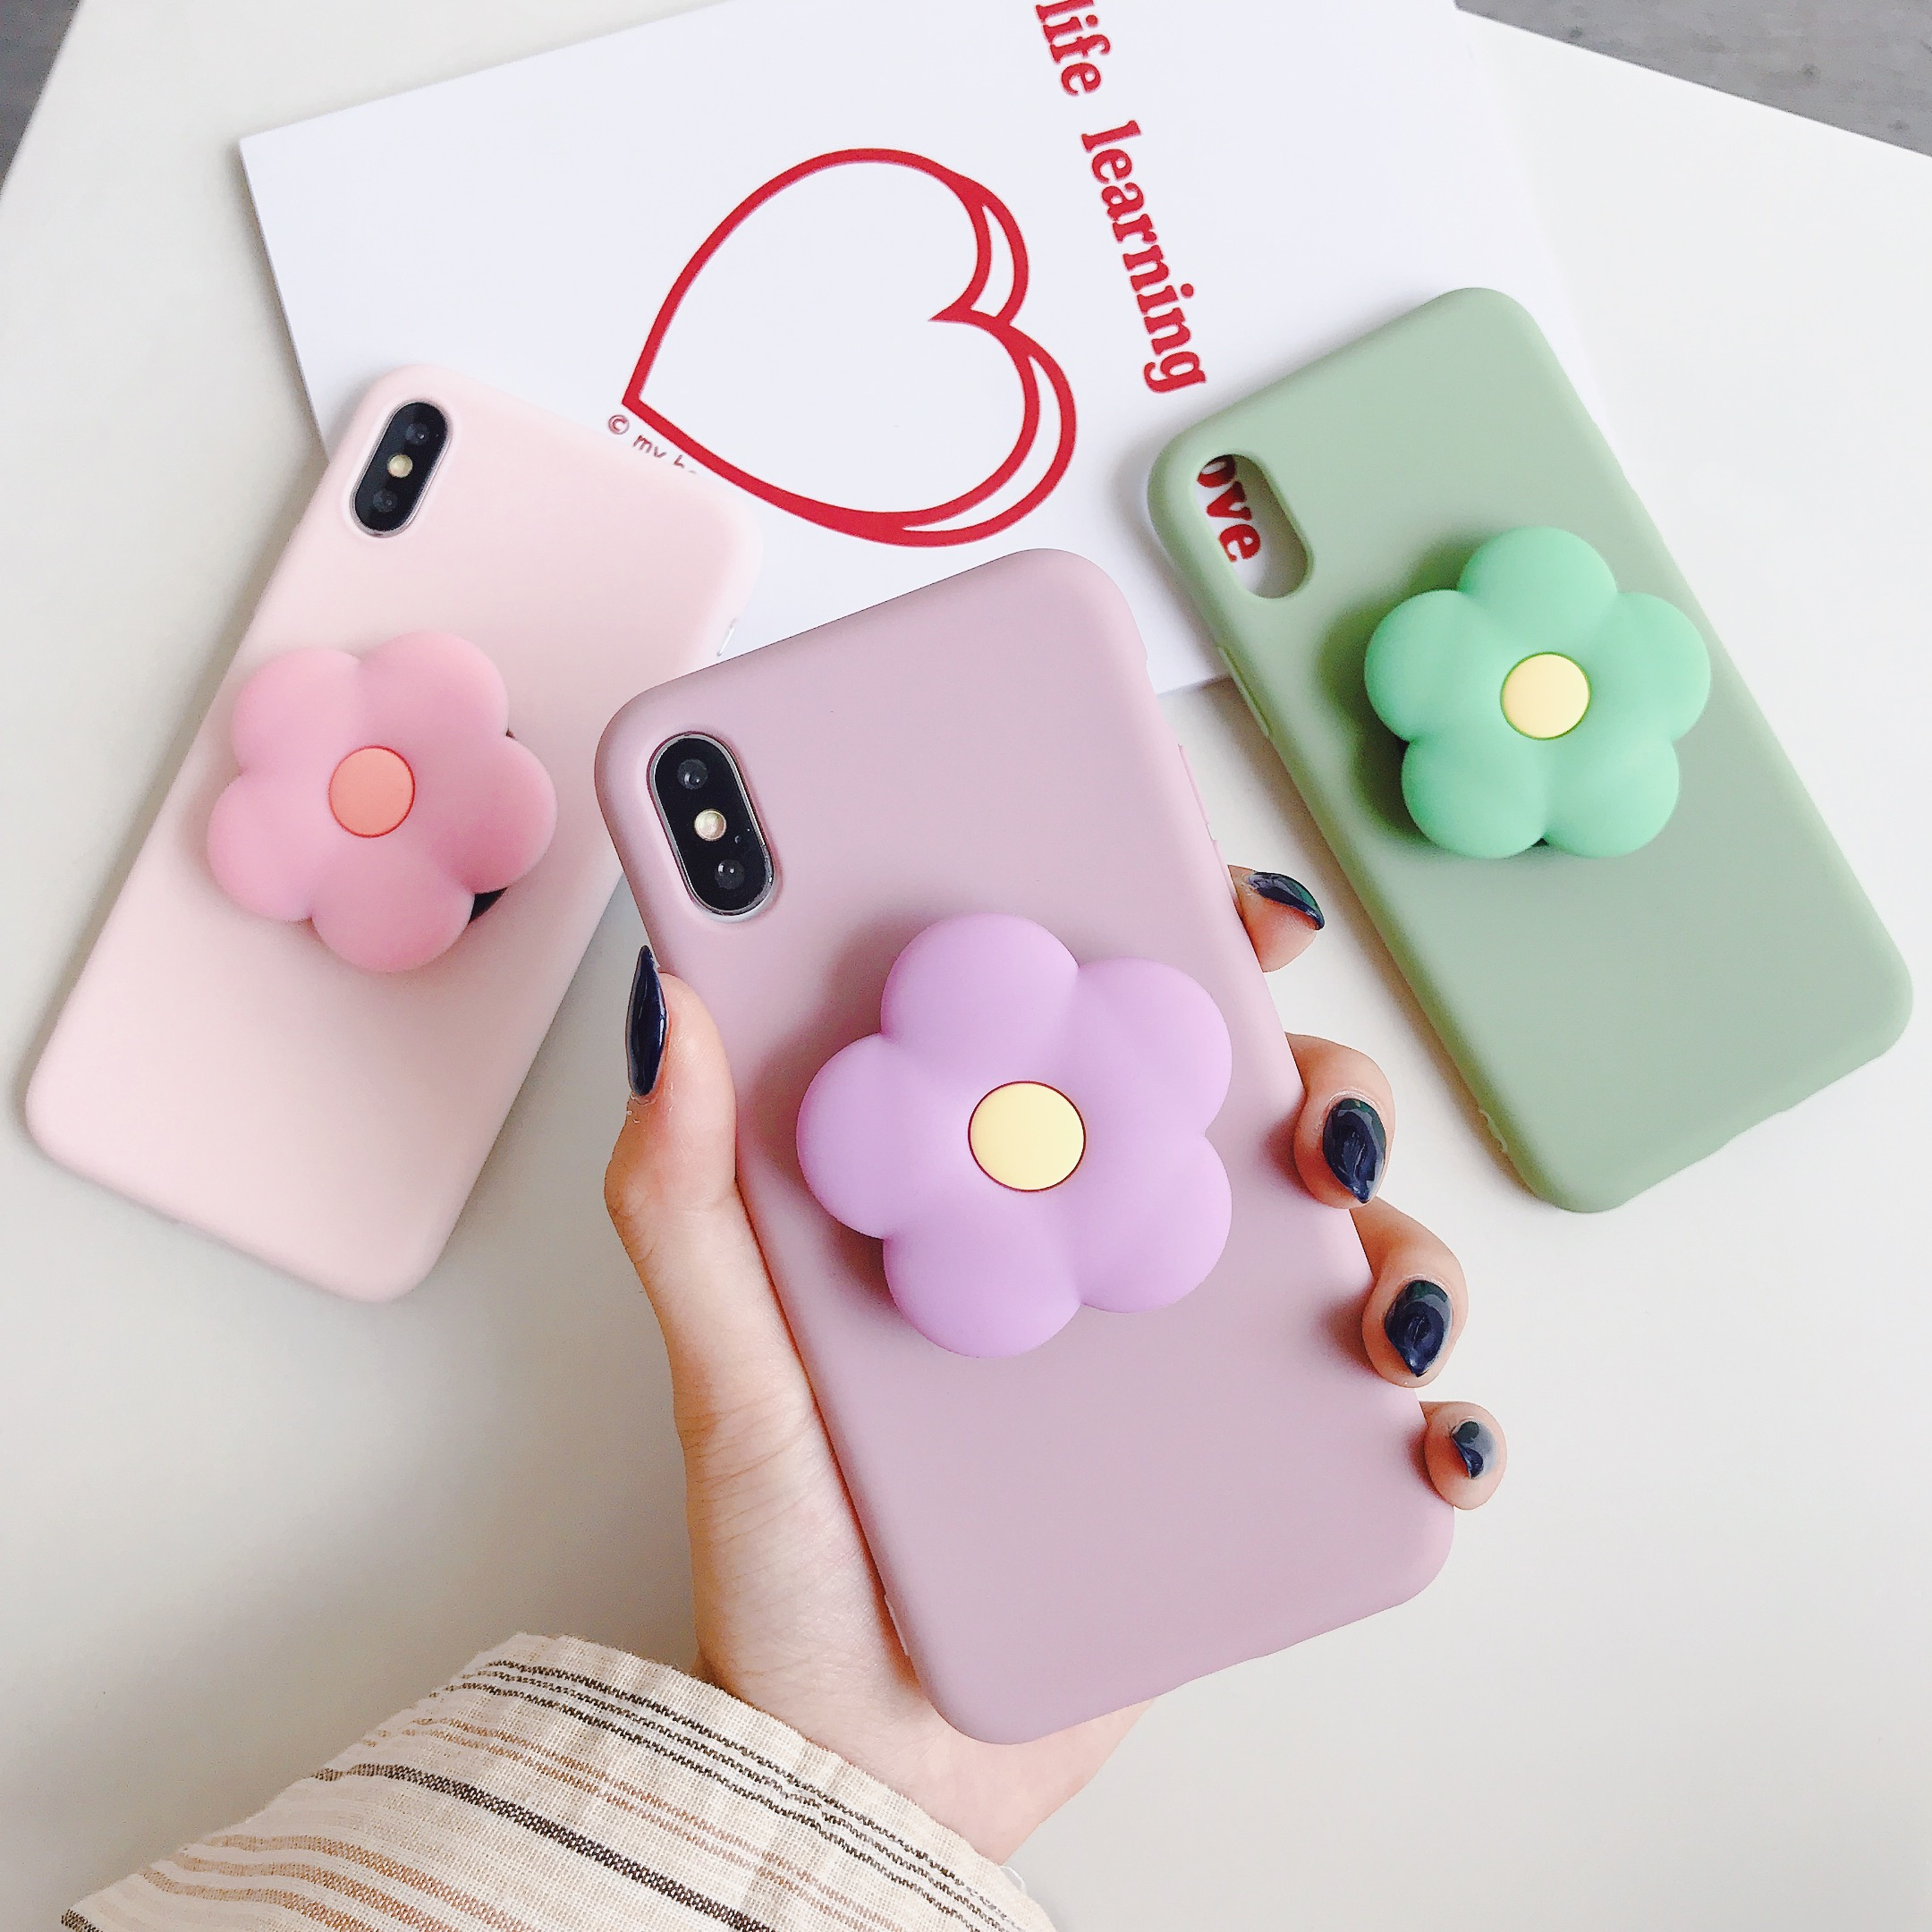 Cute flower Cartoon Soft phone case for iphone X XR XS 11 Pro Max 6 7 8 plus Holder cover for samsung S8 S9 S10 A50 Note 8 9 10